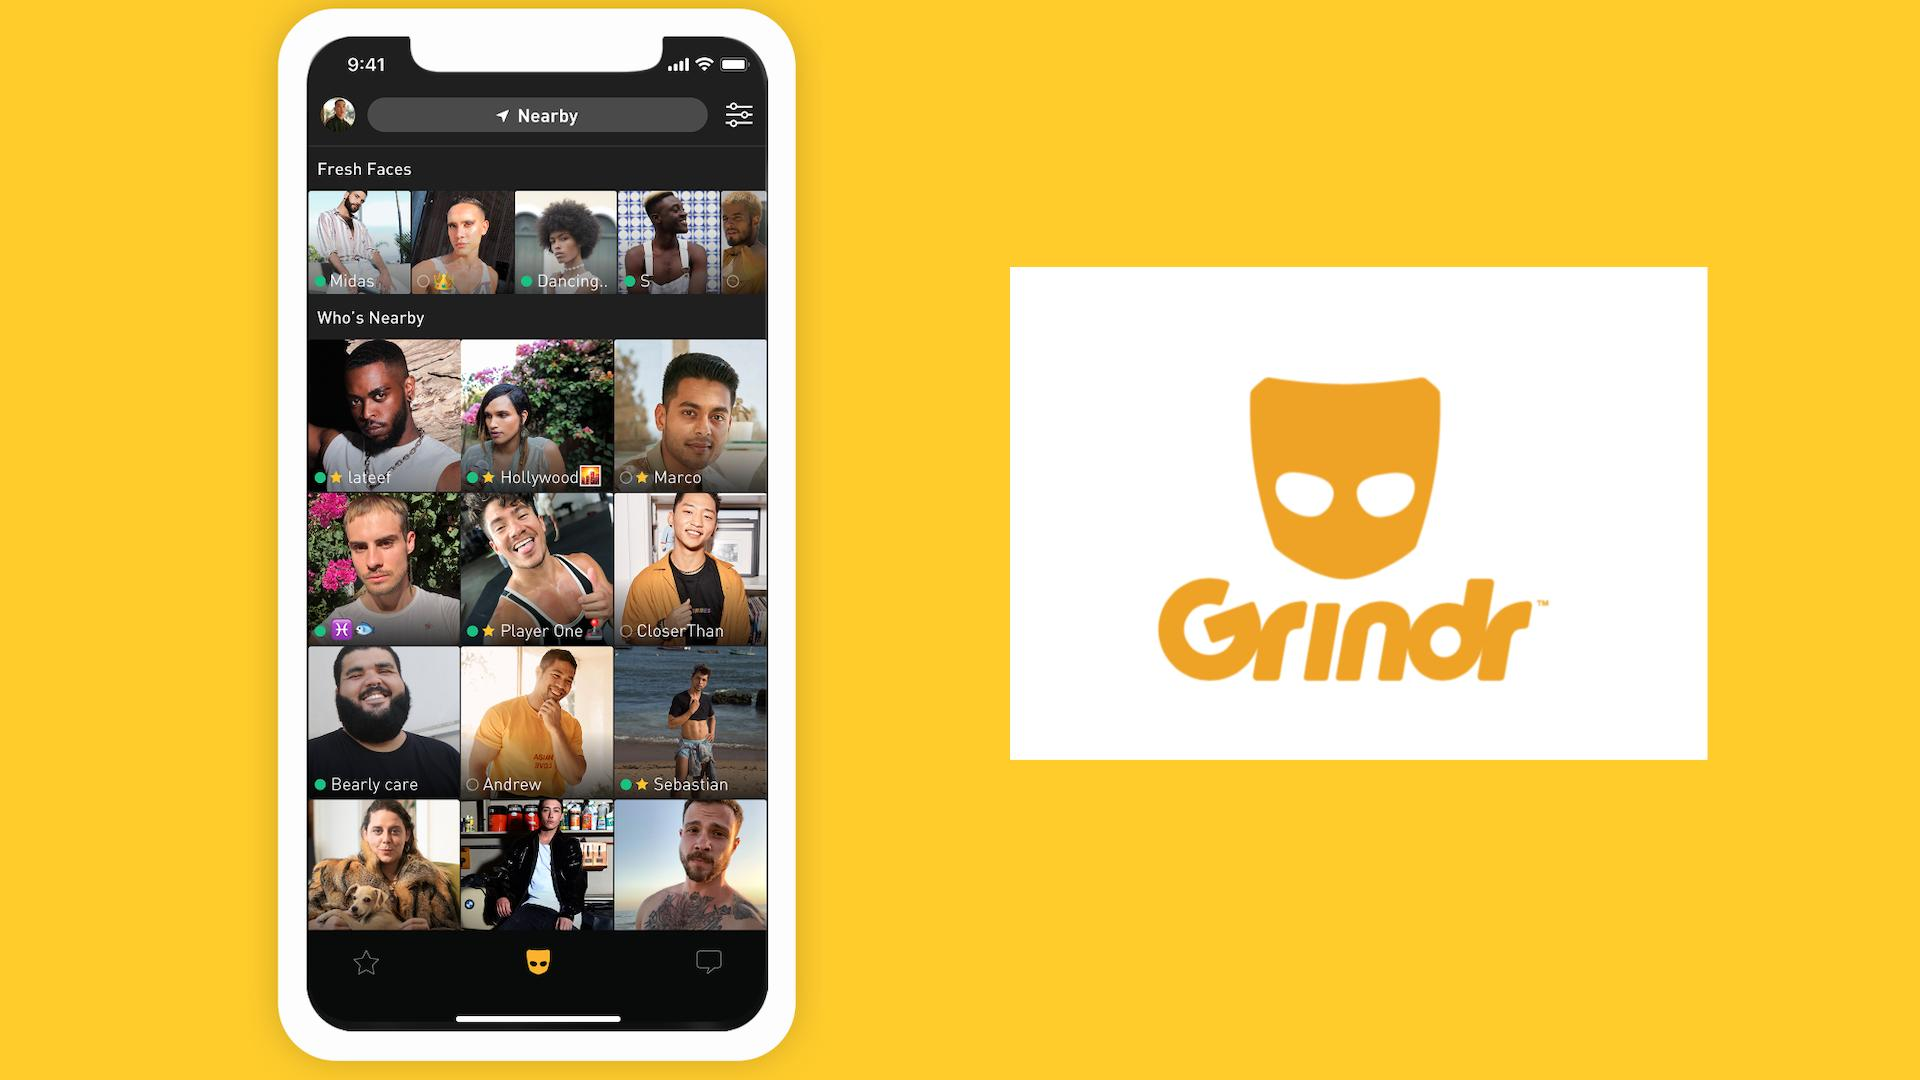 Fresh grindr what faces is Fresh Faces